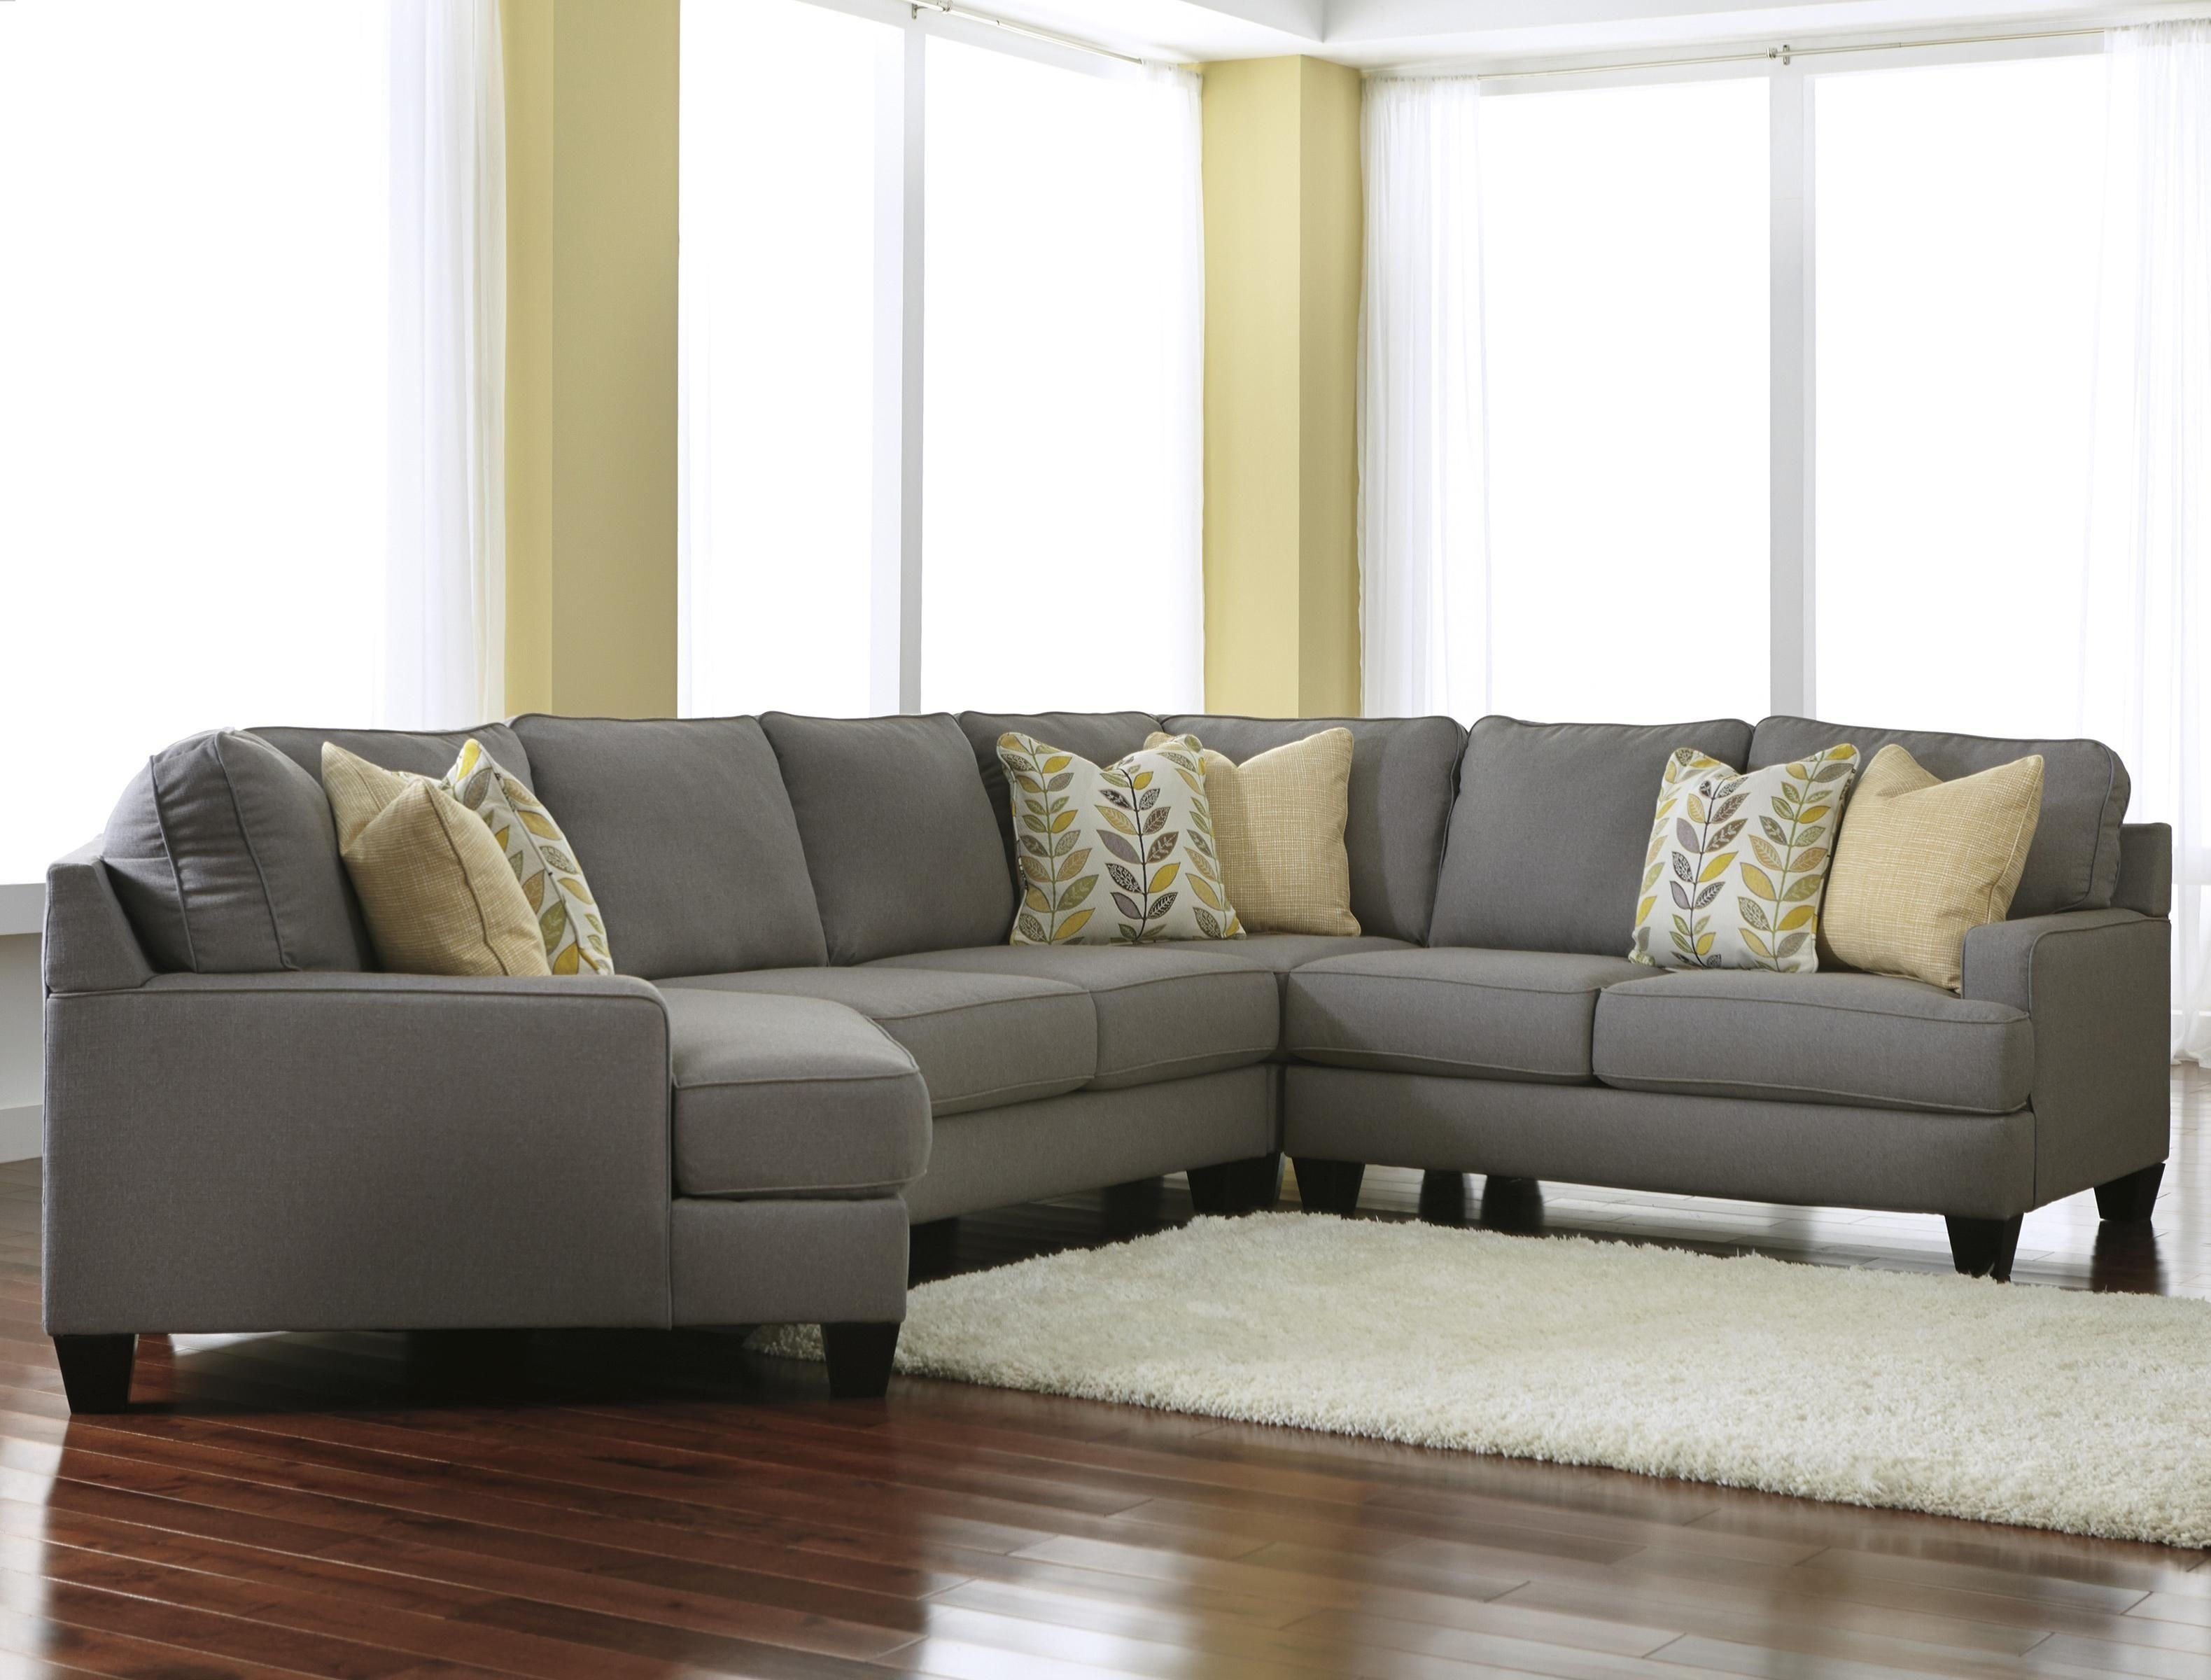 Furniture : Couch Sales New Sofas & Sectionals Living Room Furniture For Dillards Sectional Sofas (View 10 of 10)